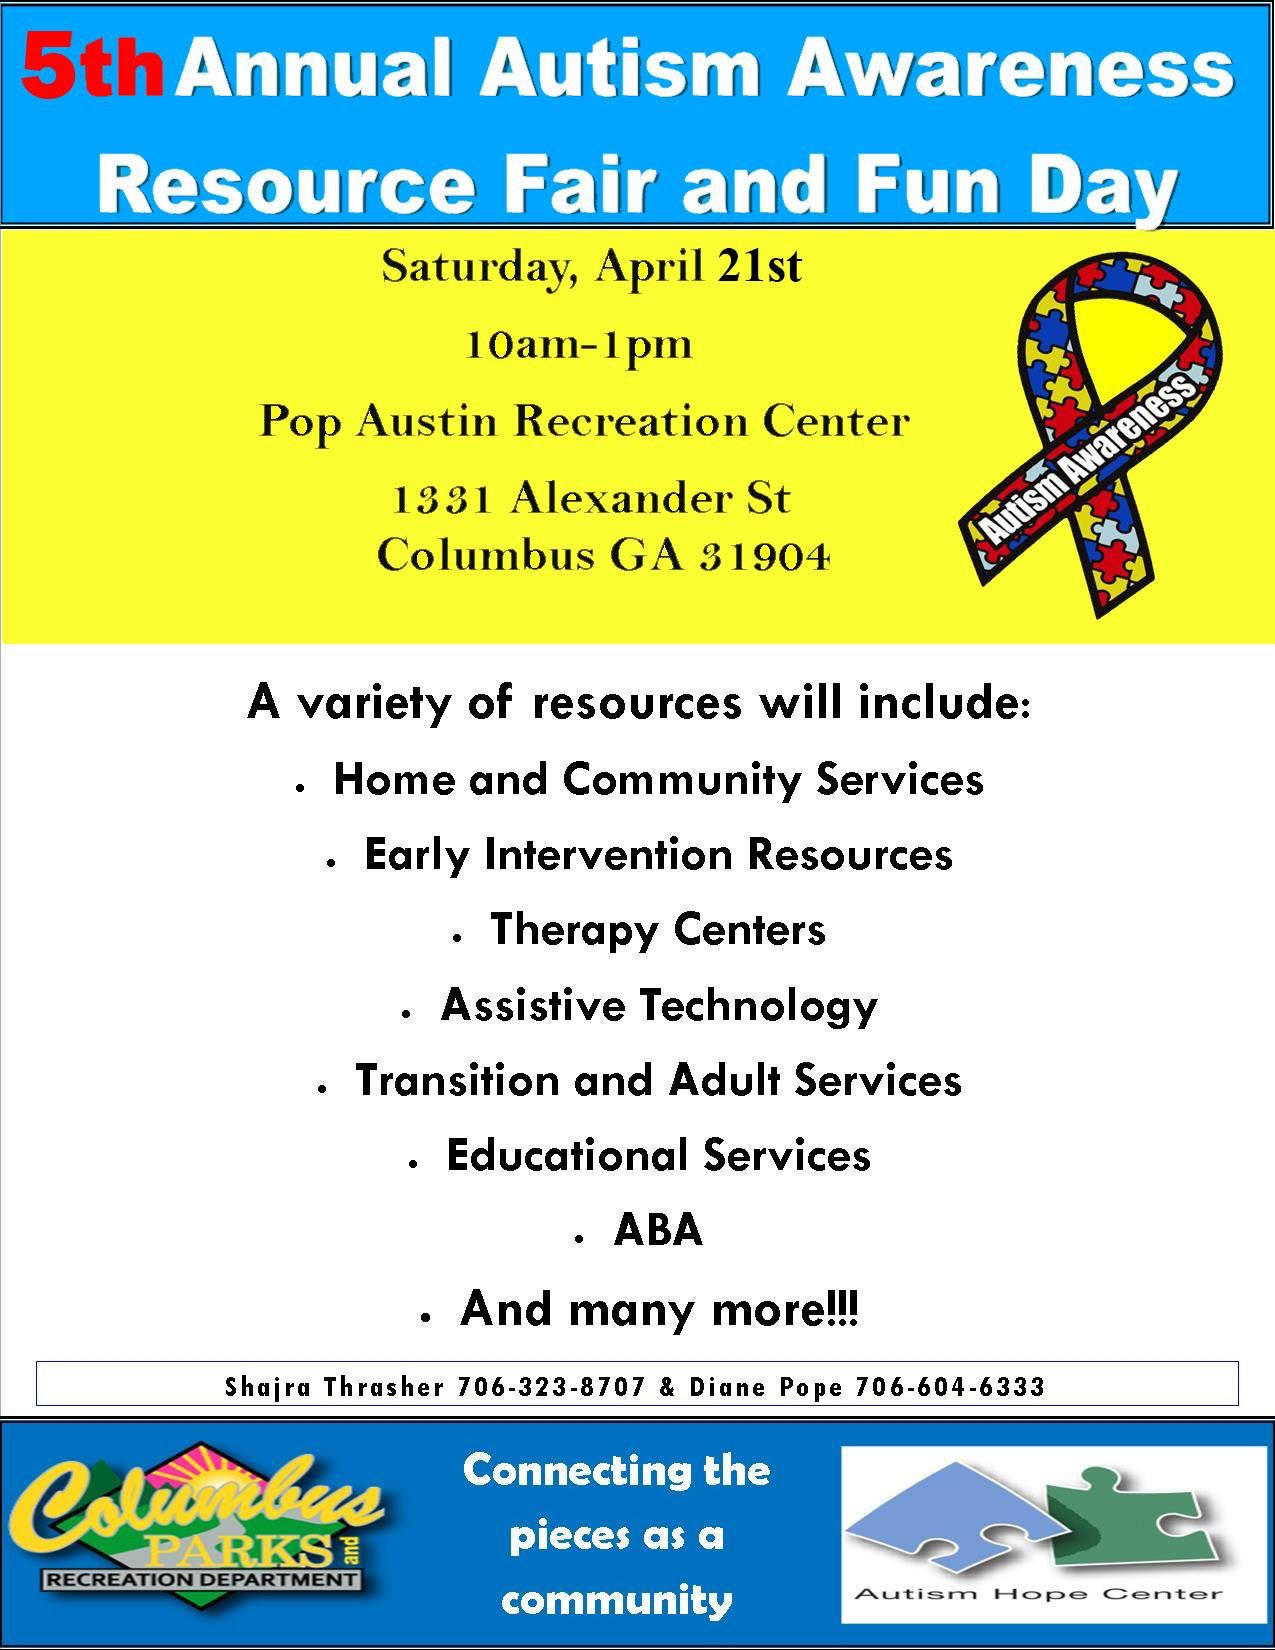 5th Annual Autism Awareness Resource Fair and Fun Day